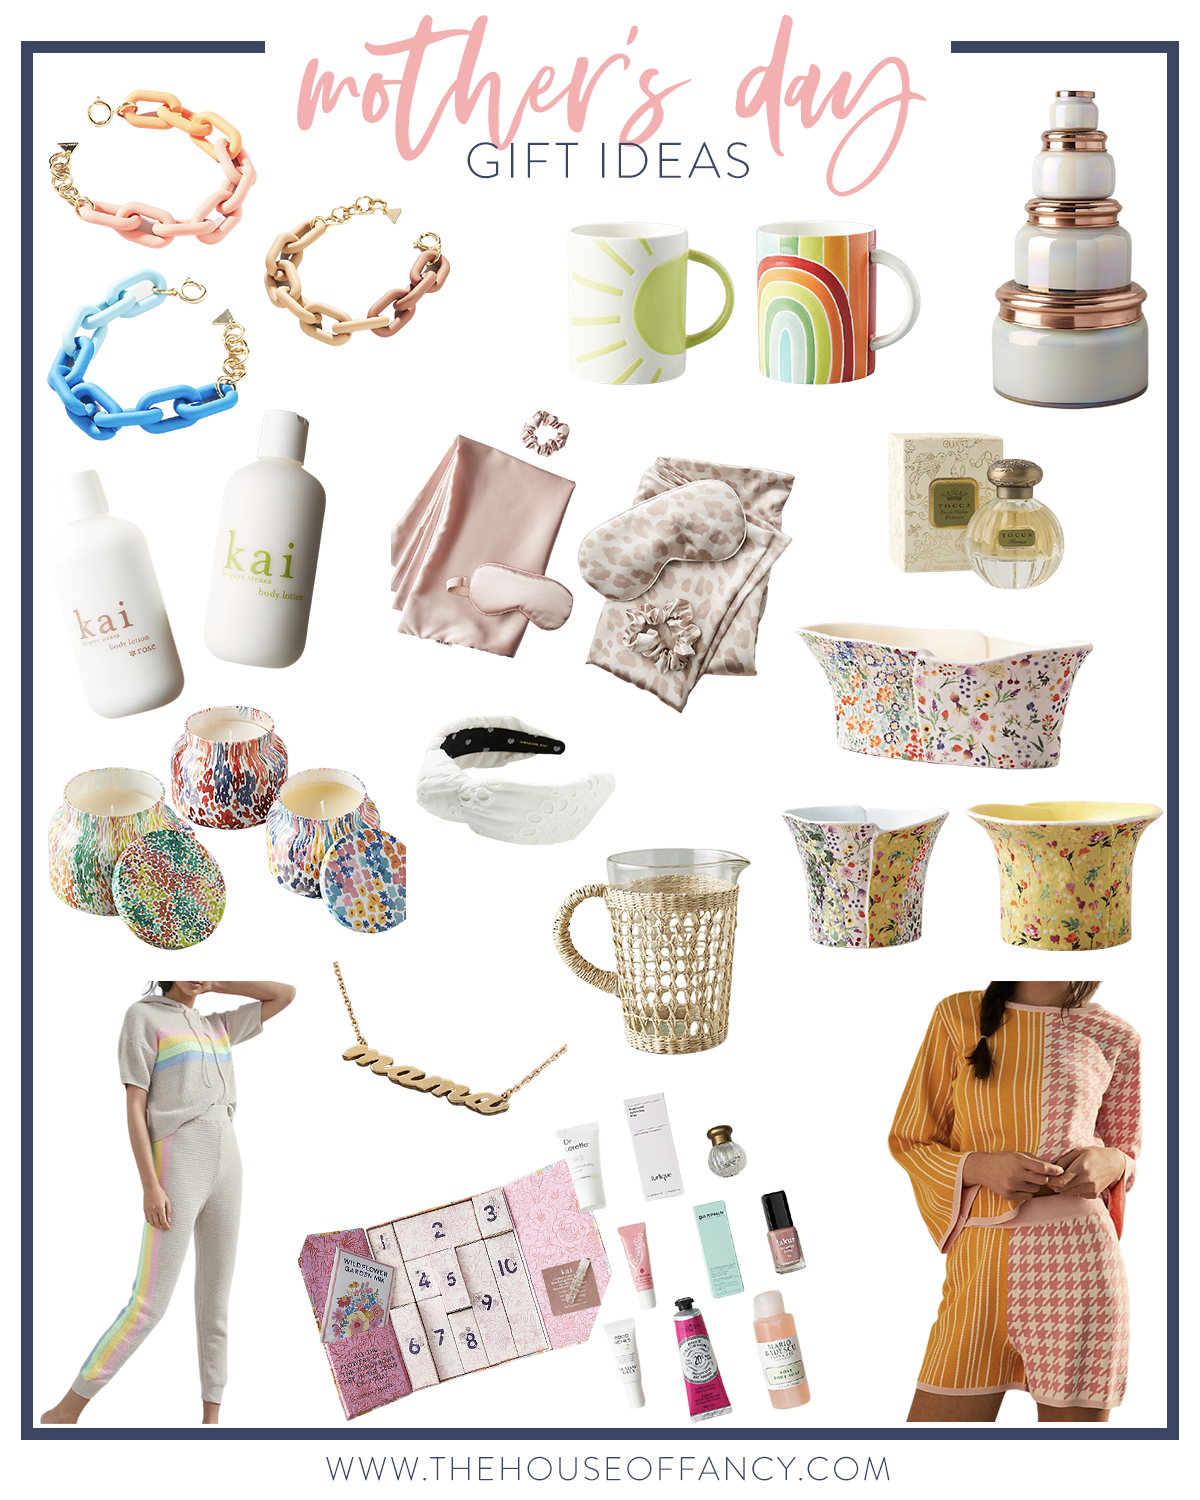 Mother's Day Gift Ideas by popular Houston life and style blog, The House of Fancy: collage image of chainlink bracelets, ceramic pots, pj sets, beauty advent calendar, perfume, water pitcher, rainbow and sunshine mug, knot headband, candles, and mama necklace.